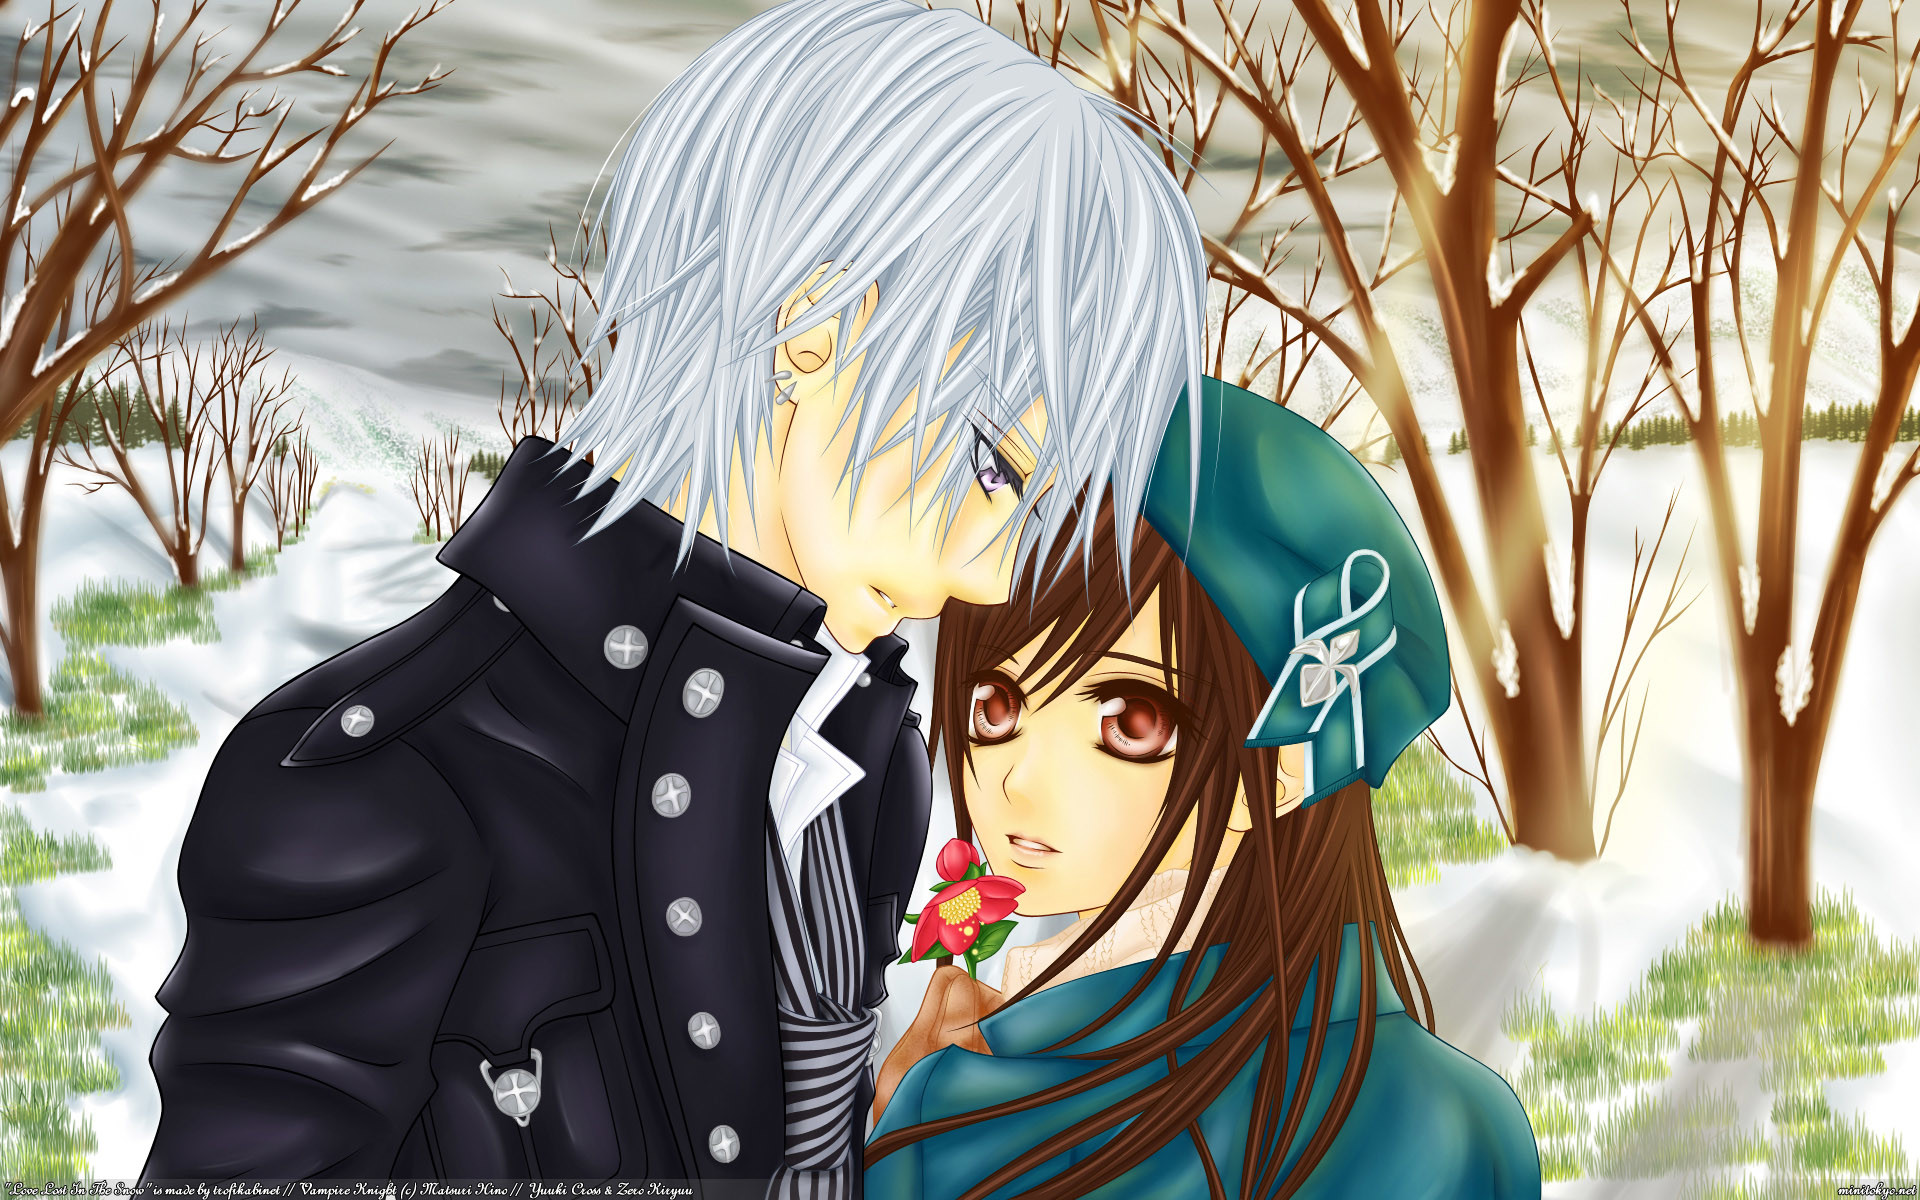 Anime Love Wallpapers: Cute Anime Couple Wallpaper (70+ Images